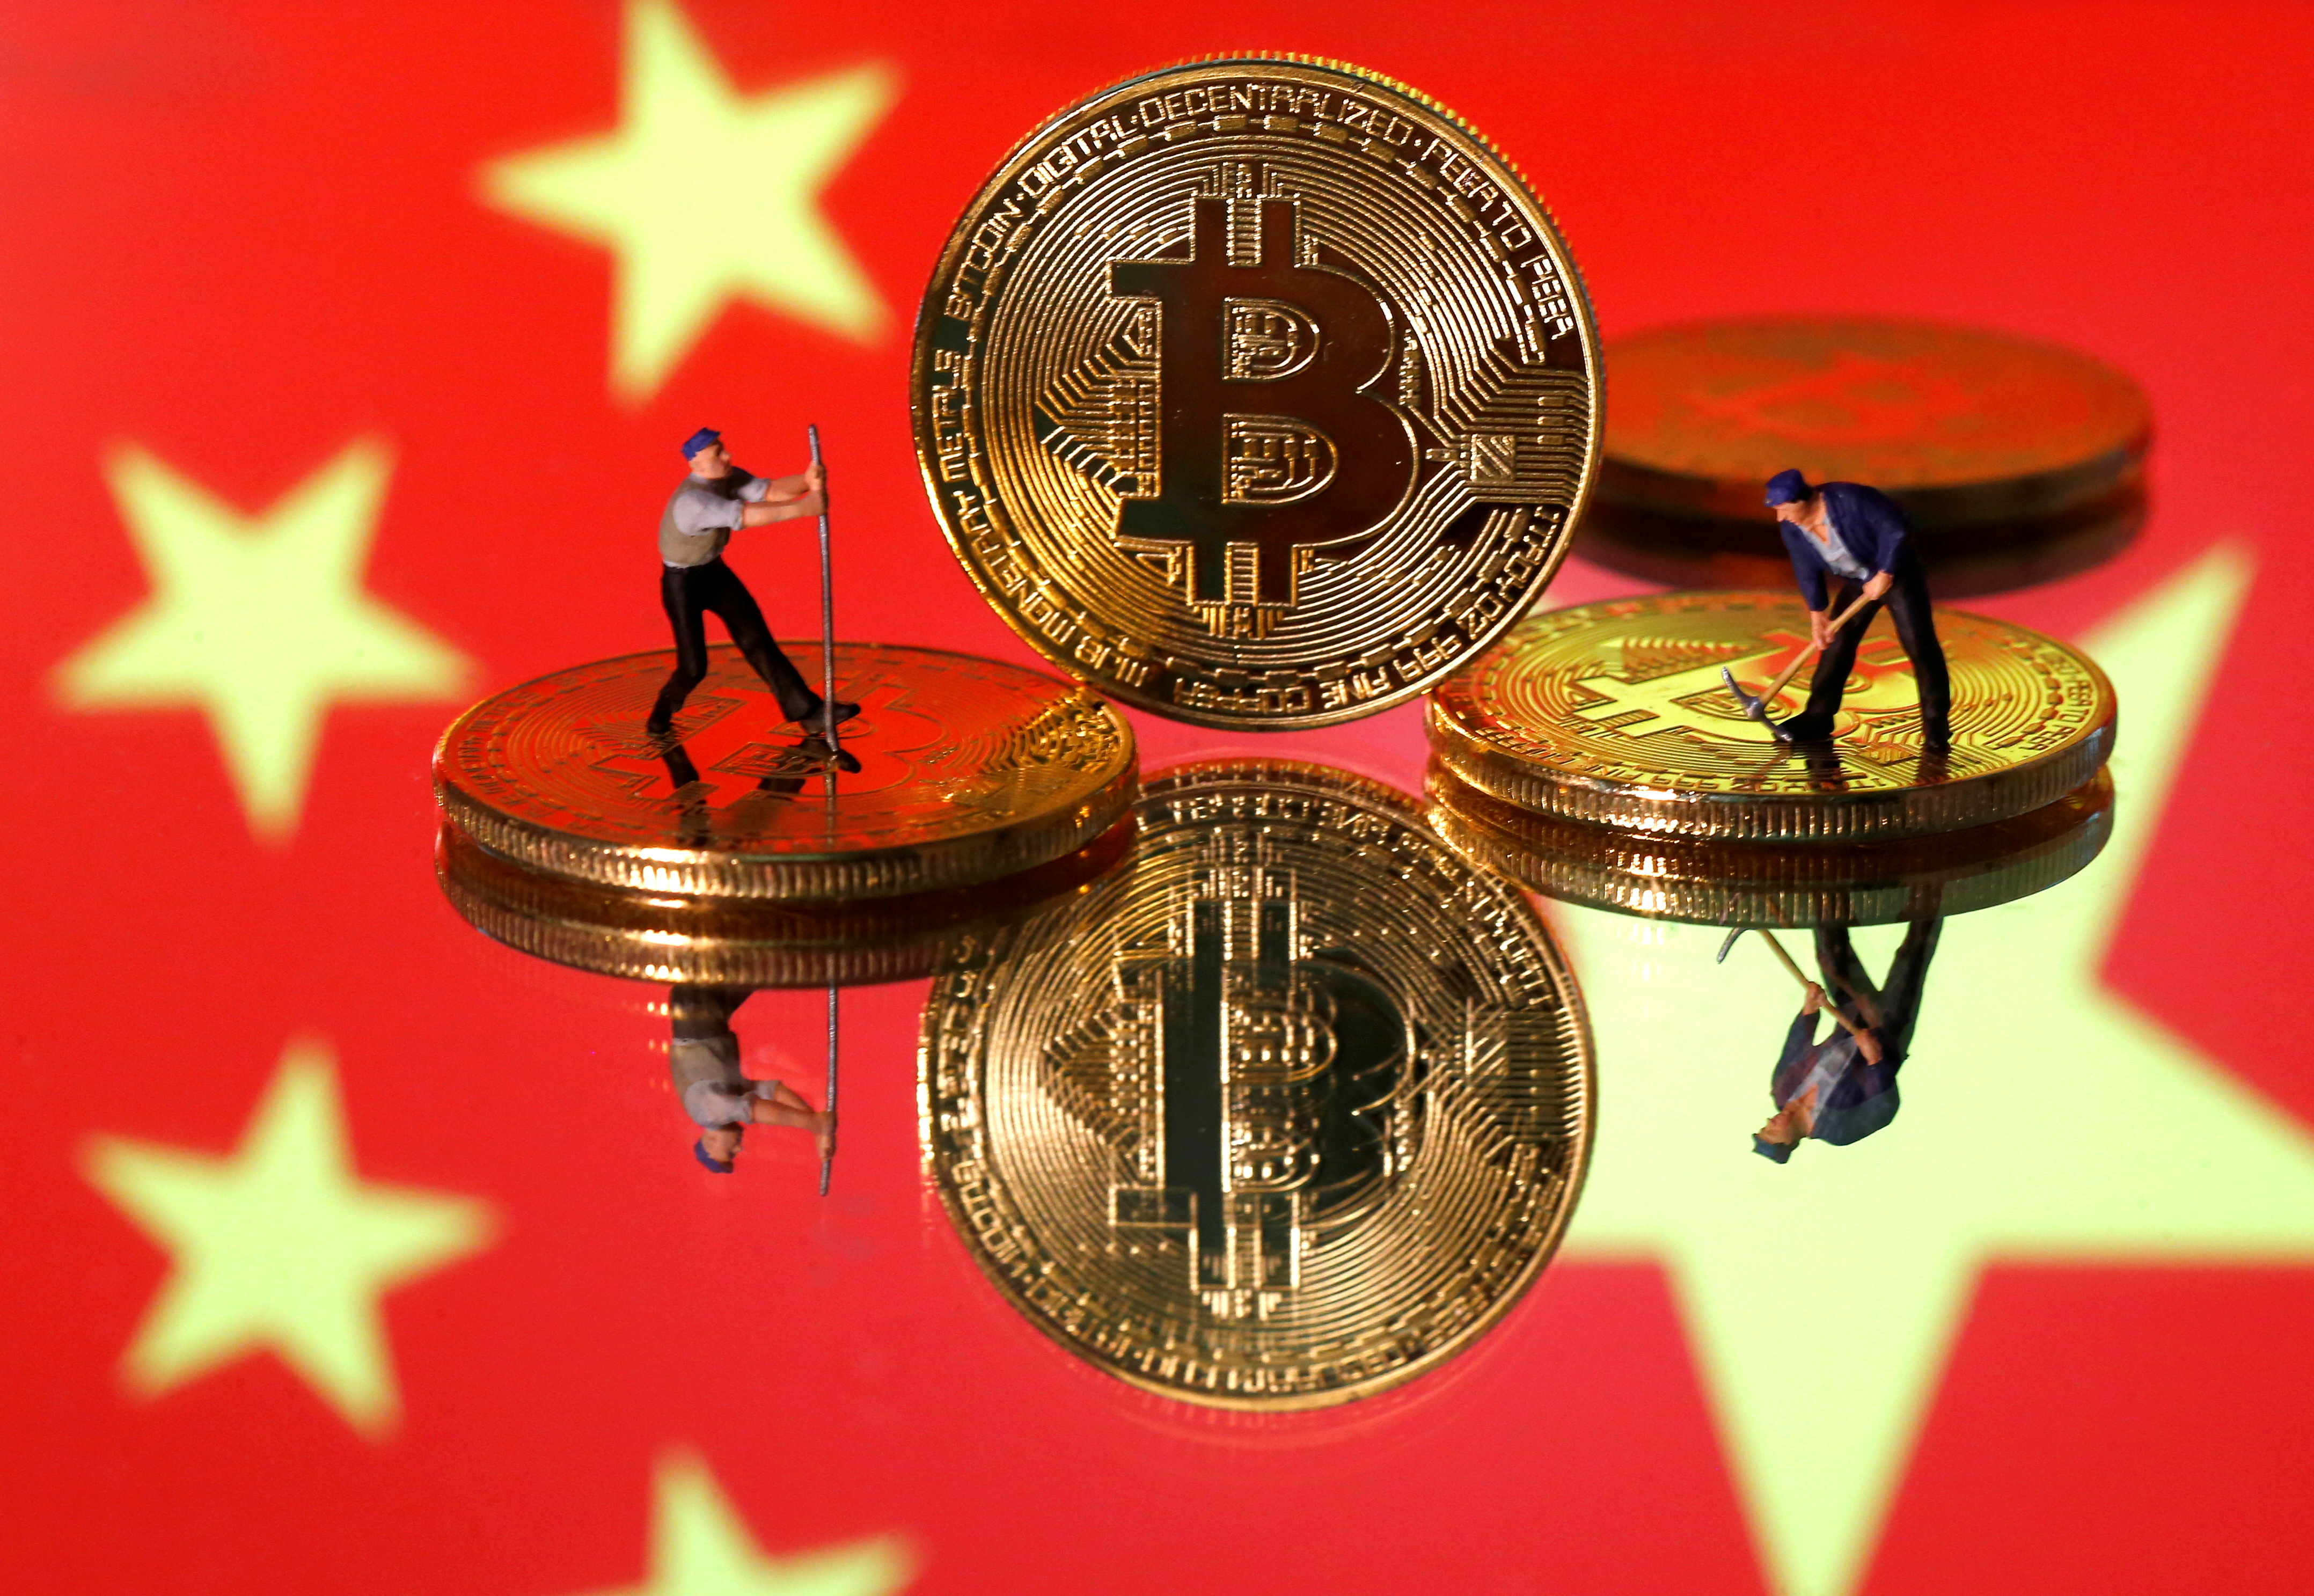 Small toy figurines are seen on representations of the Bitcoin virtual currency displayed in front of an image of China's flag in this illustration picture, April 9, 2019. REUTERS/Dado Ruvic/Illustration/File Photo